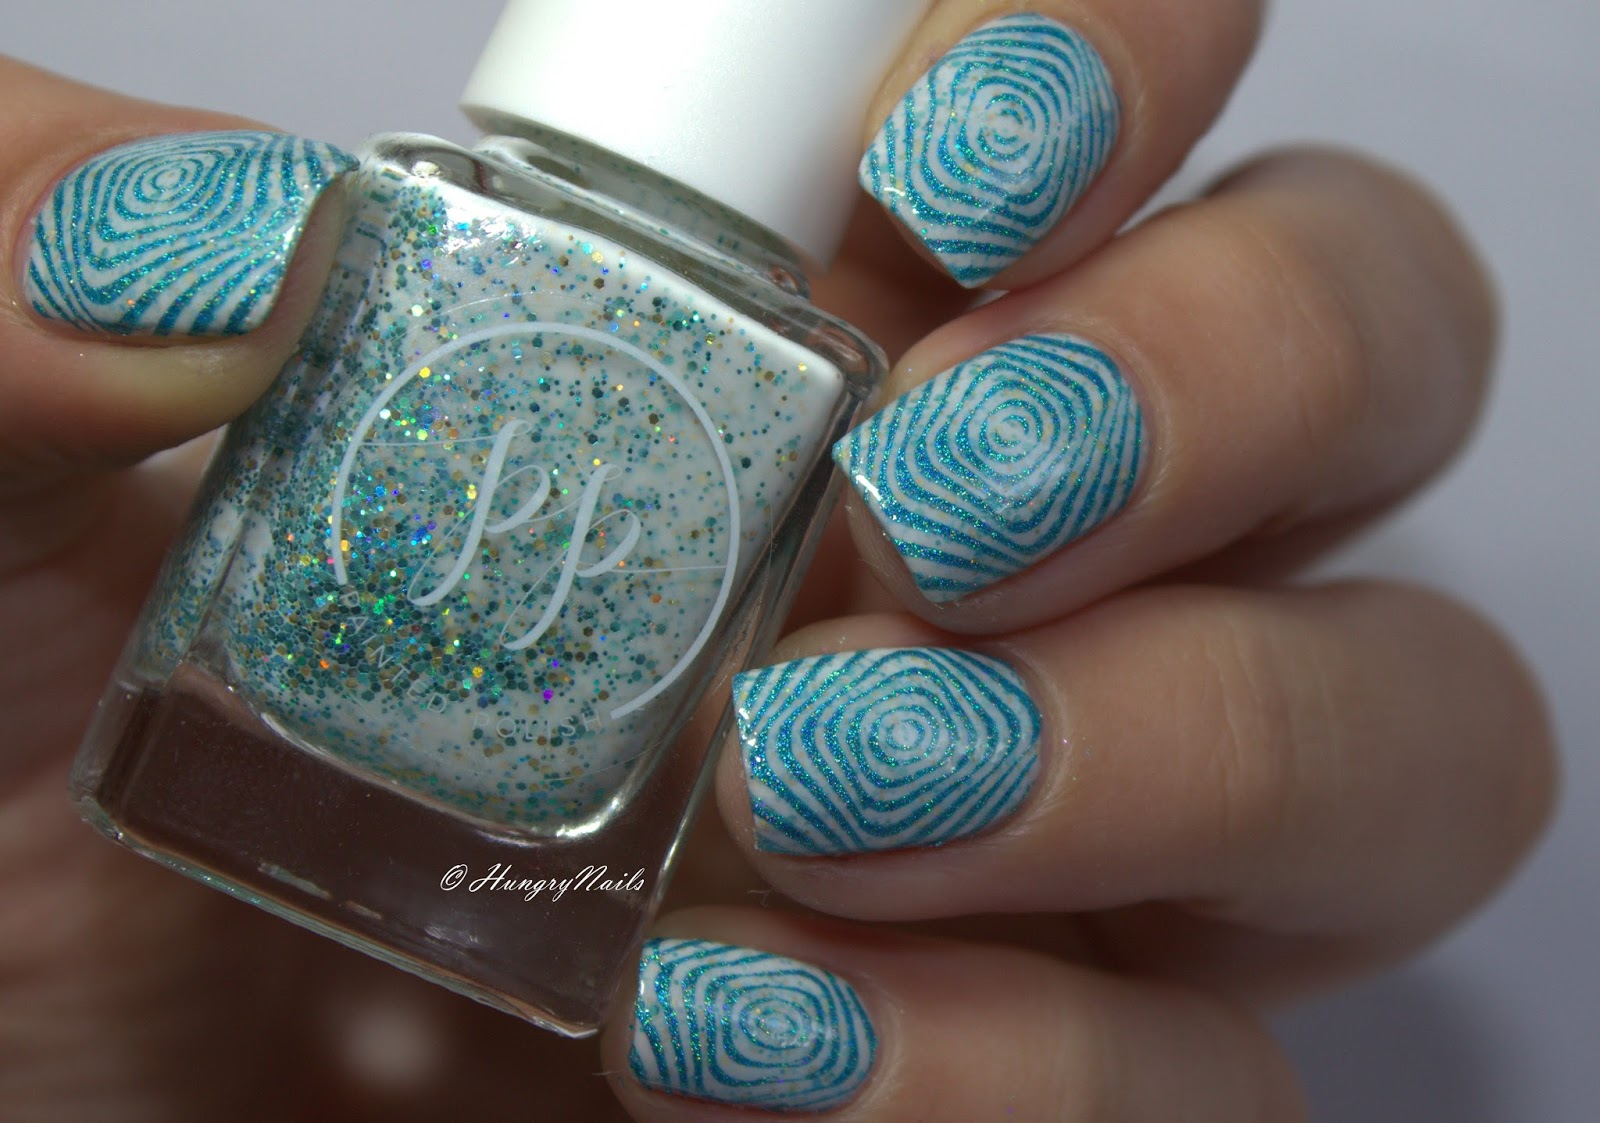 http://hungrynails.blogspot.de/2016/11/painted-polish-mermaid-melody.html